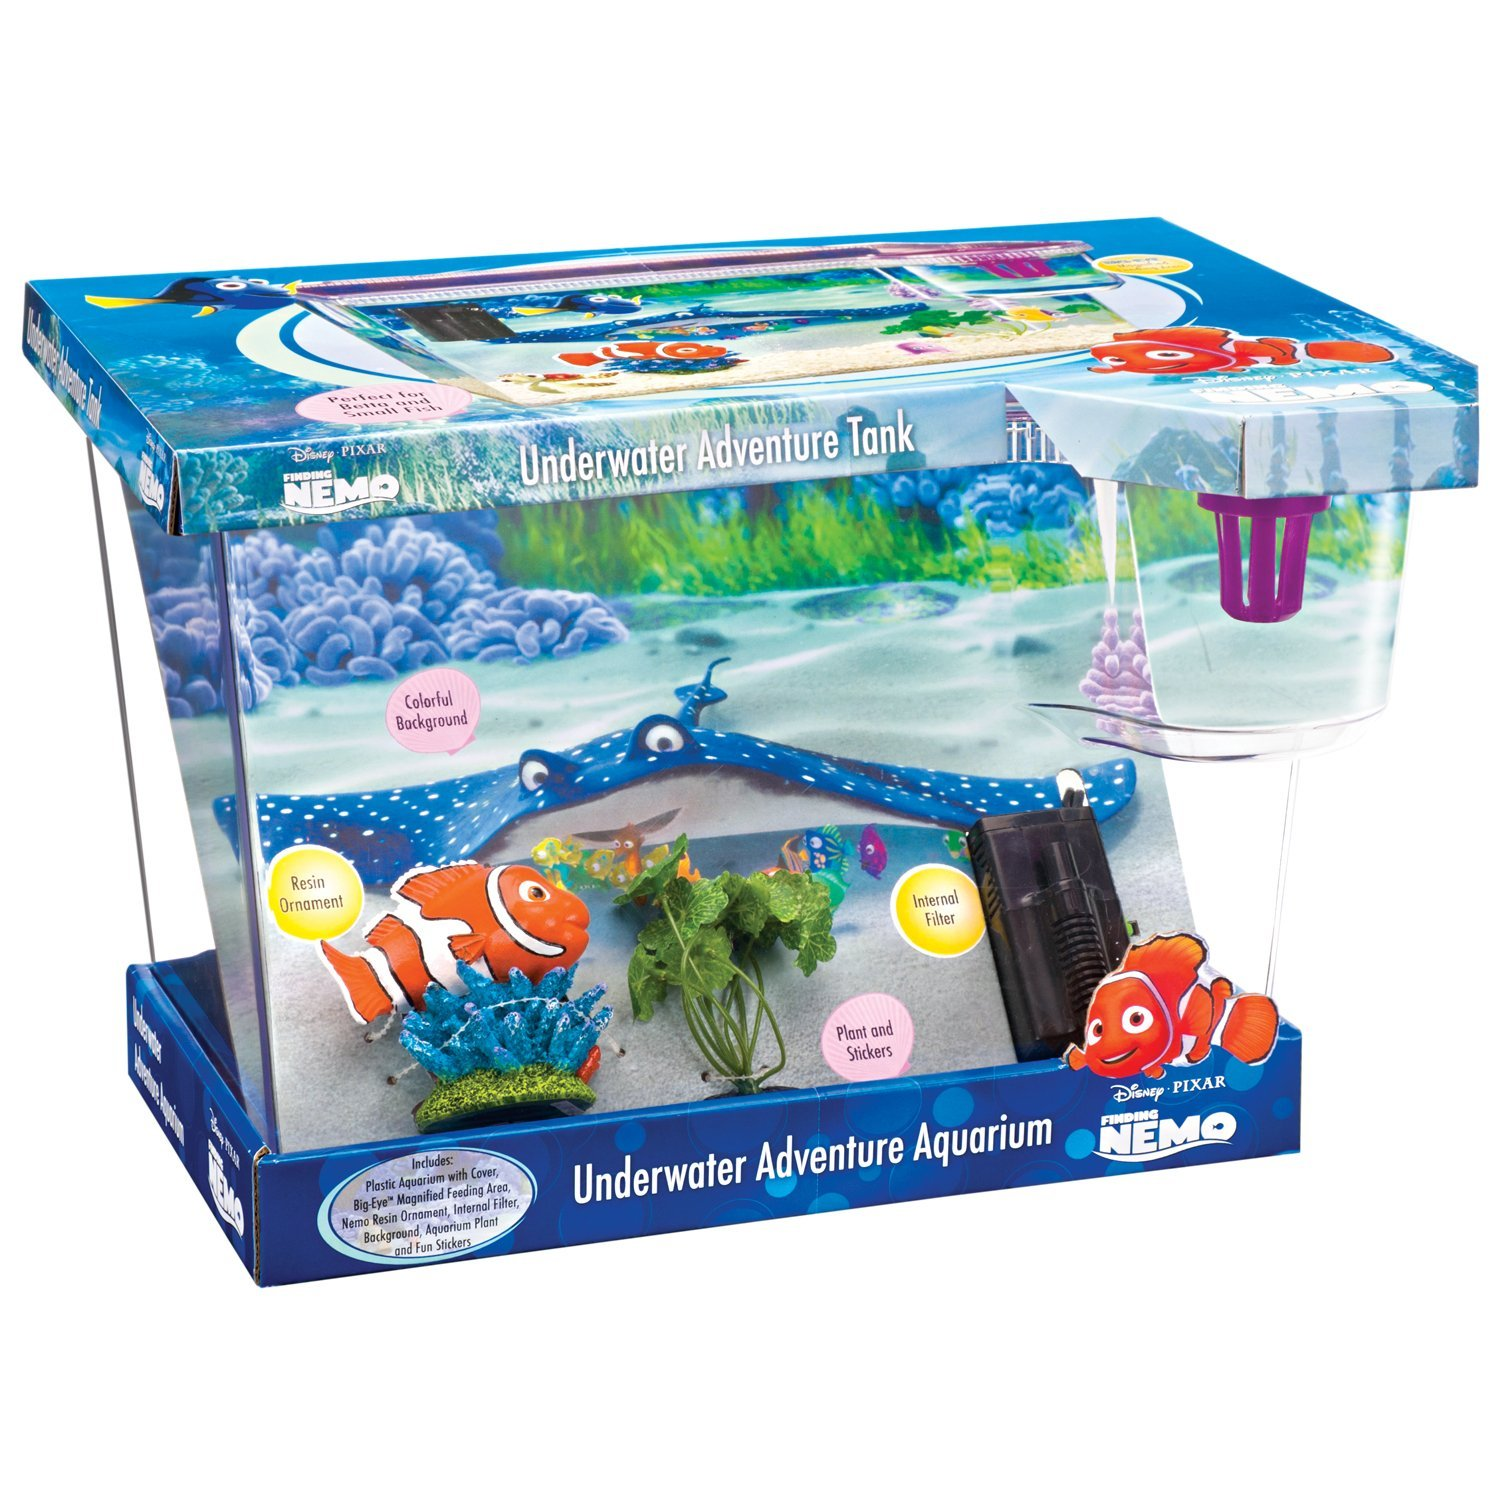 Fish in nemo aquarium - The Finding Nemo Disney Big Eye Fish Aquarium Fish Tank Amazon Co Uk Pet Supplies